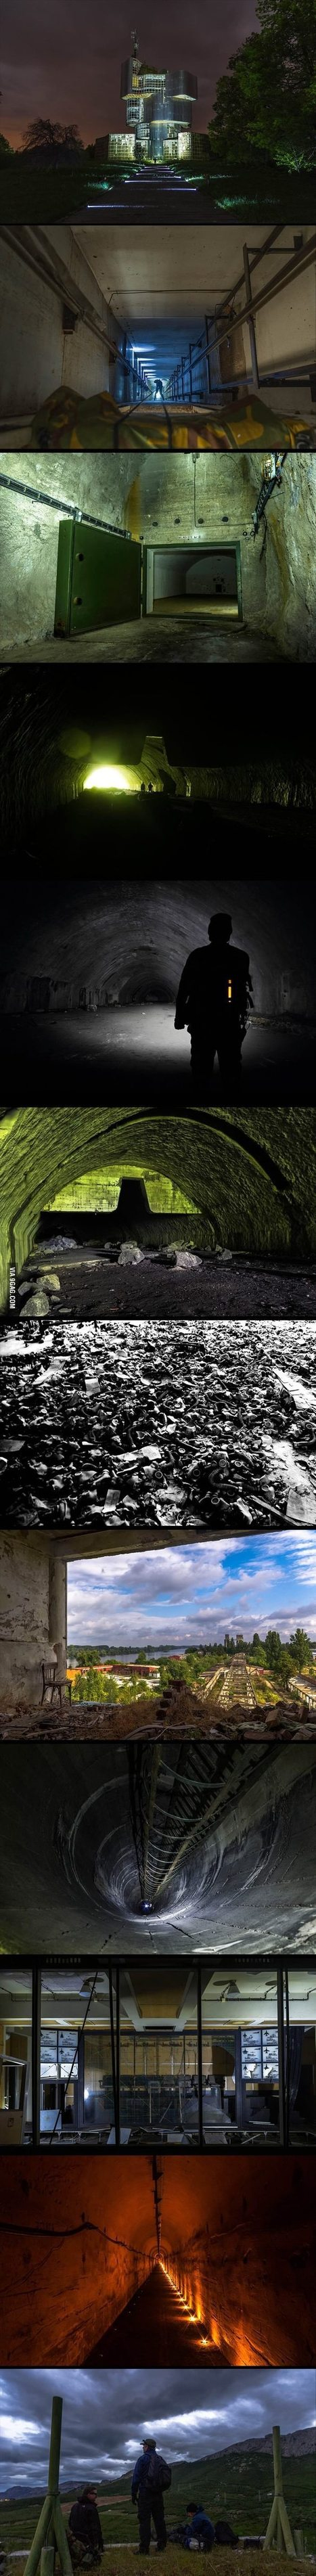 Abandoned locations in Croatia | Modern Ruins, Decay and Urban Exploration | Scoop.it